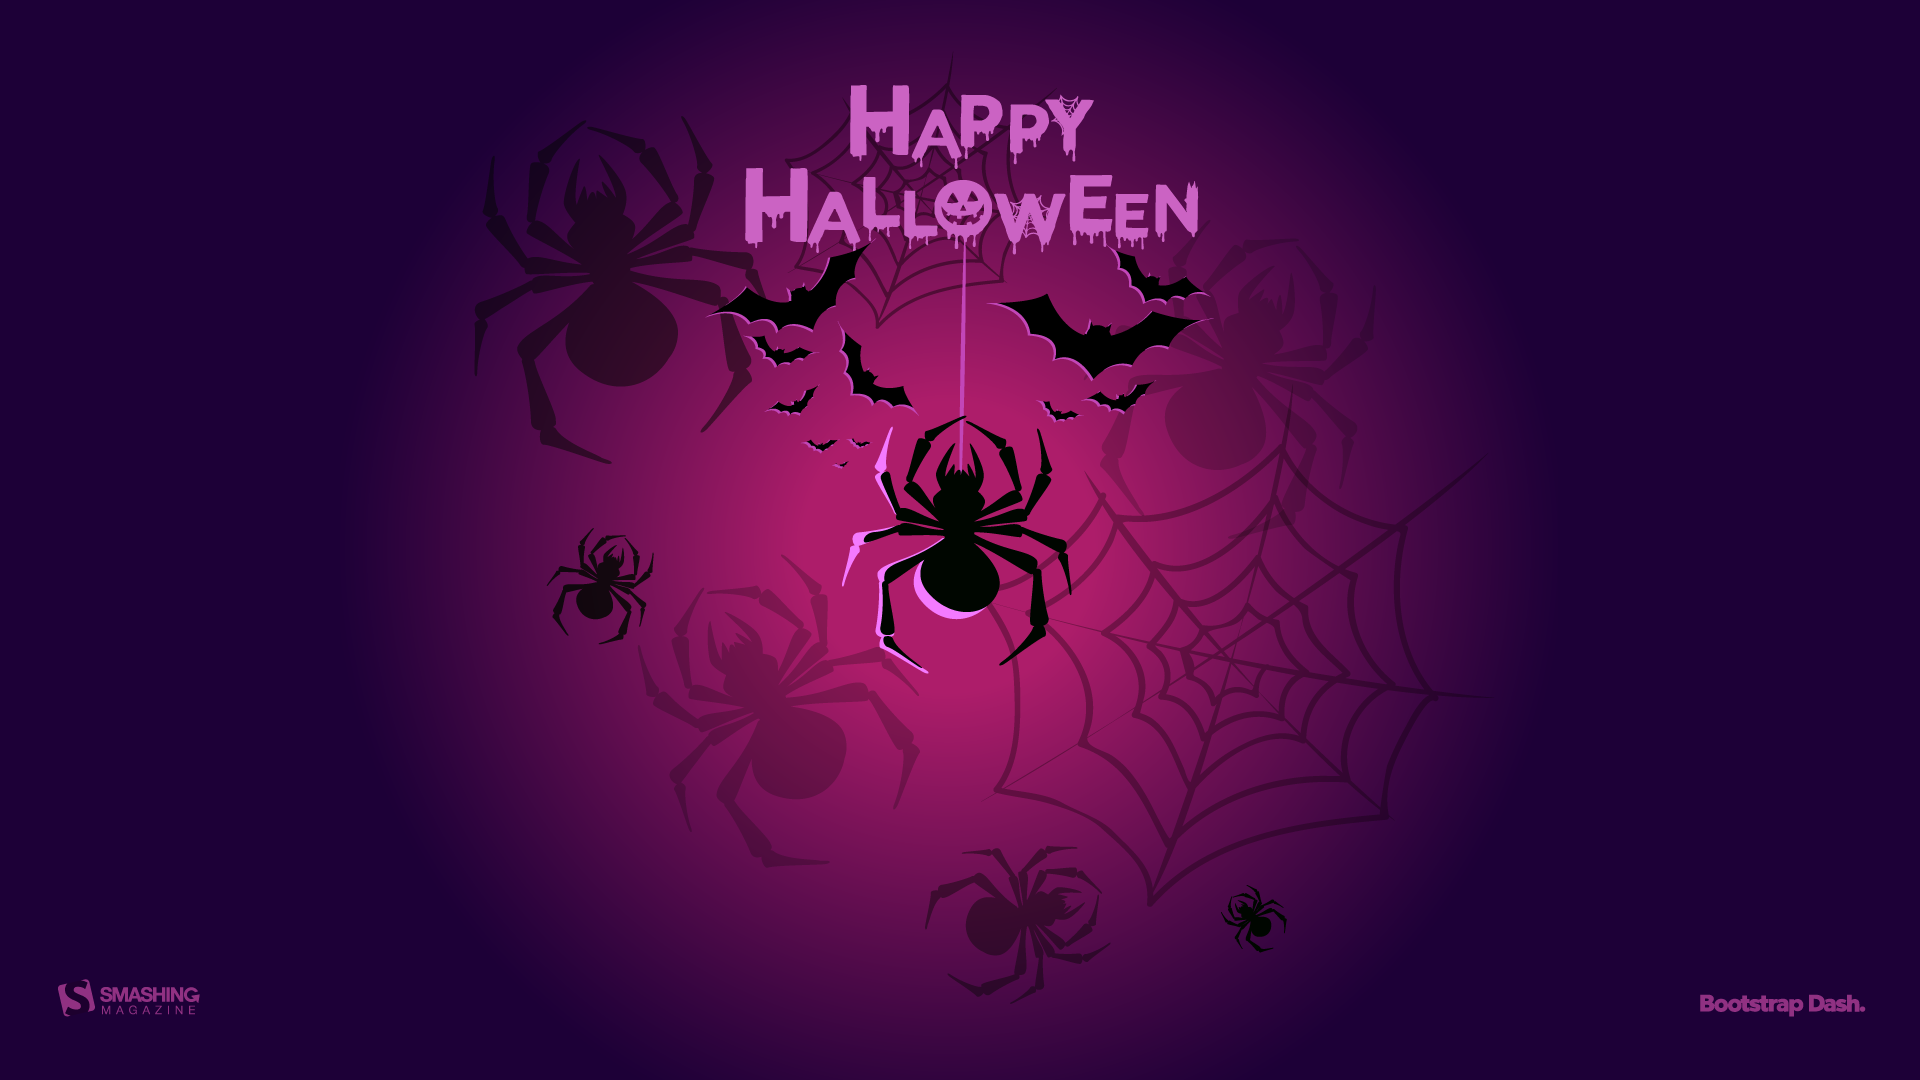 Happy Halloween Wallpaper Halloween Time Background 1920x1080